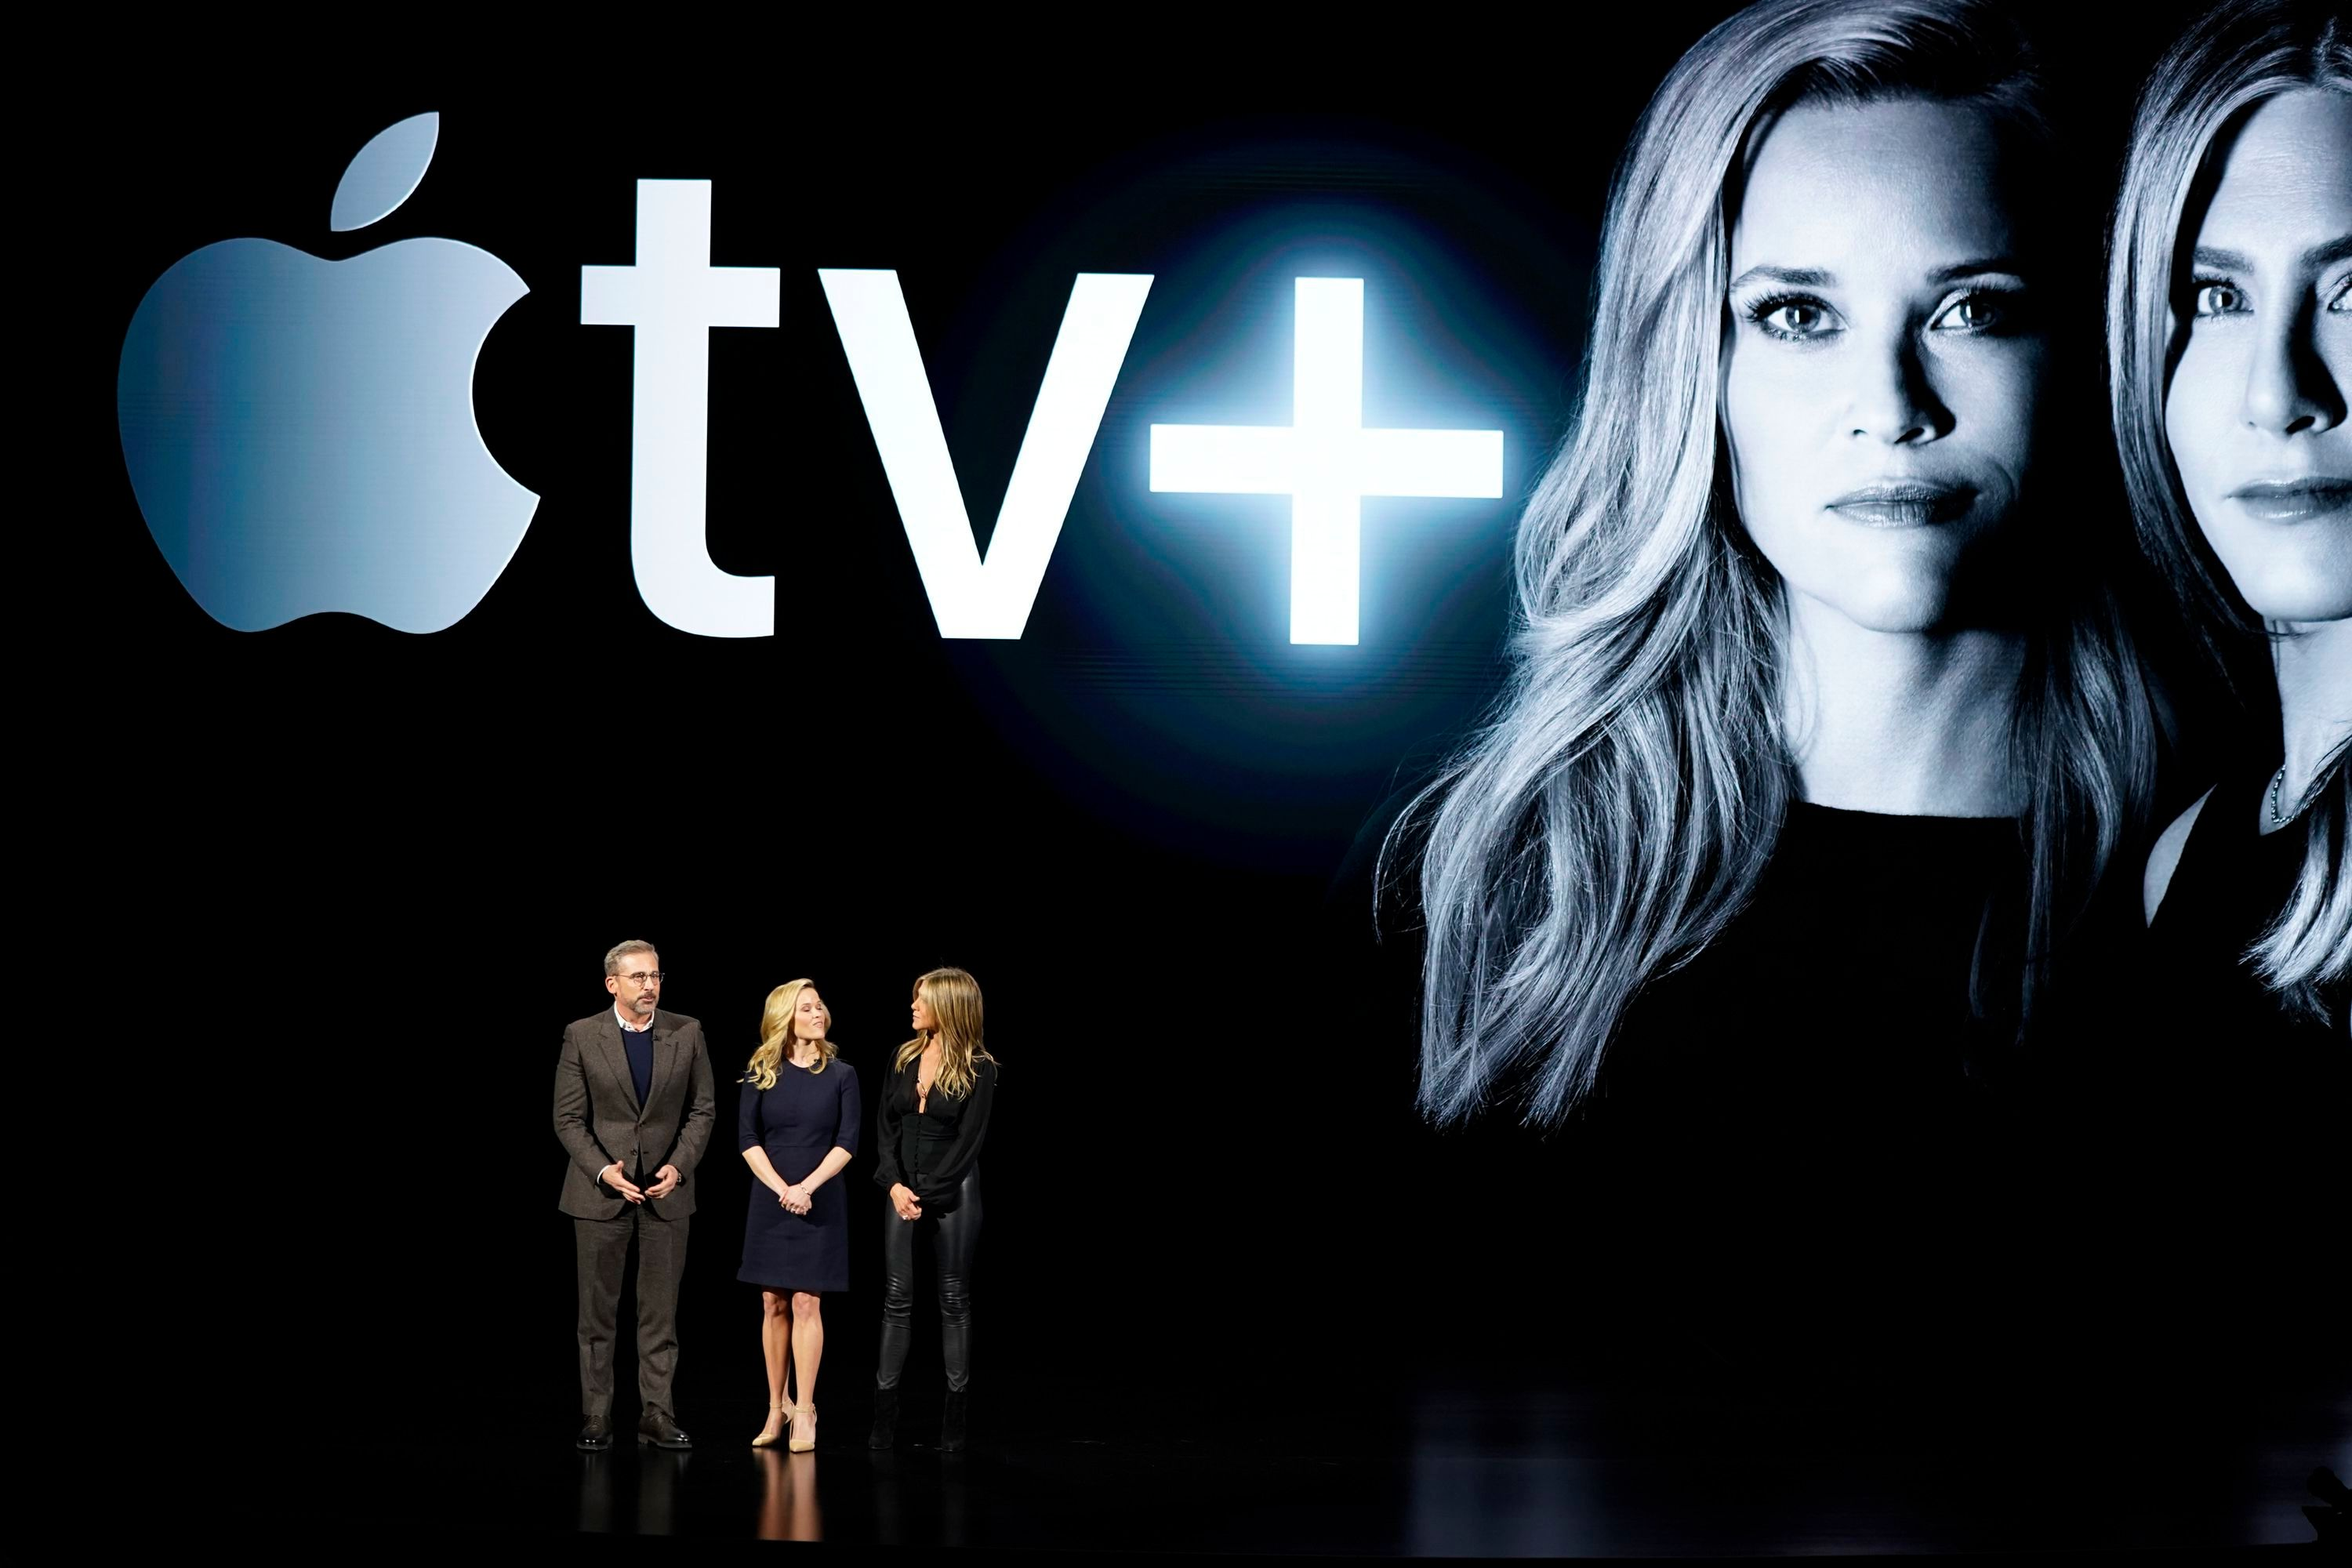 From left, Steve Carell, Reese Witherspoon and Jennifer Aniston speak at the Steve Jobs Theater during an event to announce new products, in Cupertino, CalifApple Streaming TV, Cupertino, USA - 25 Mar 2019